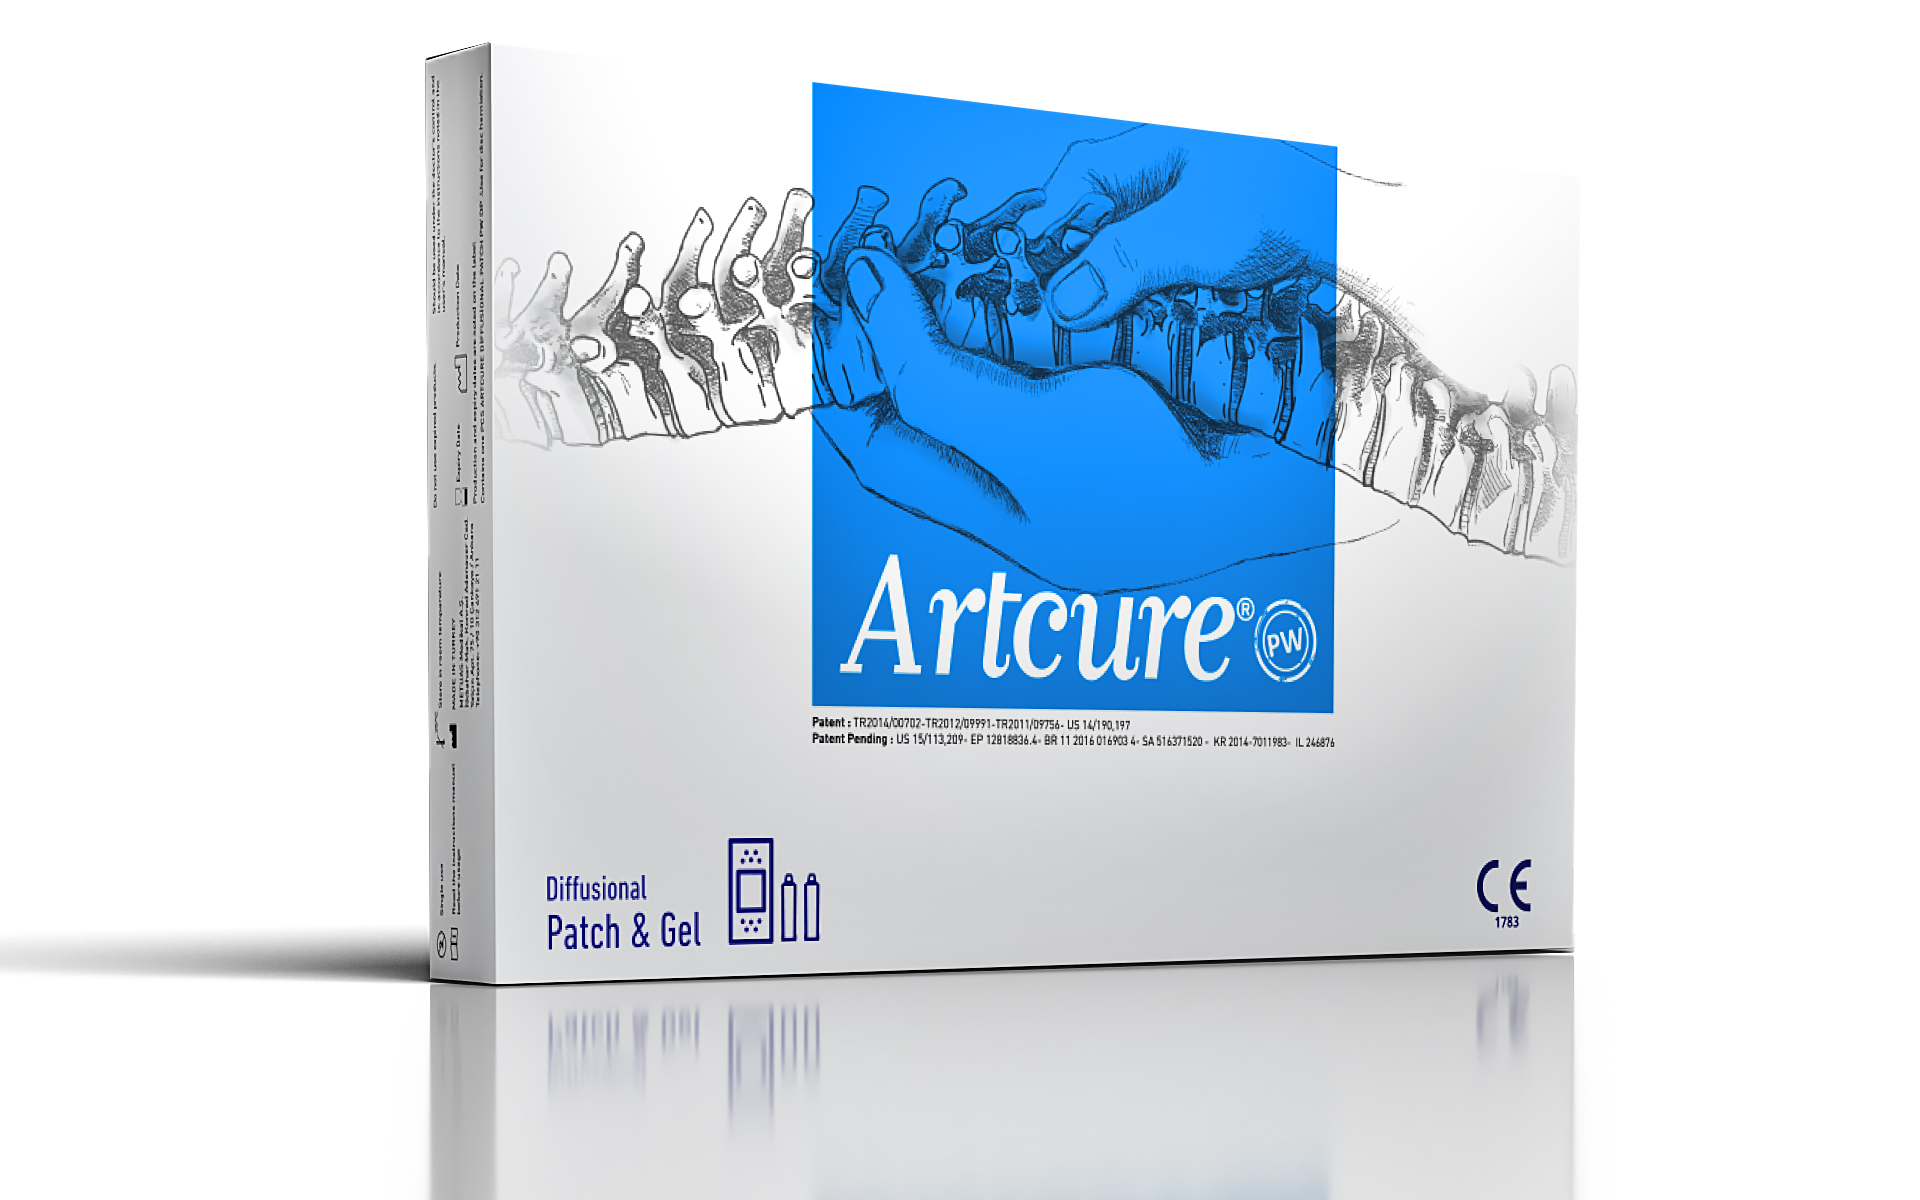 Artcure PW Diffusional Patch - Lower Back and Cervical Hernia - Non-Invasive Method